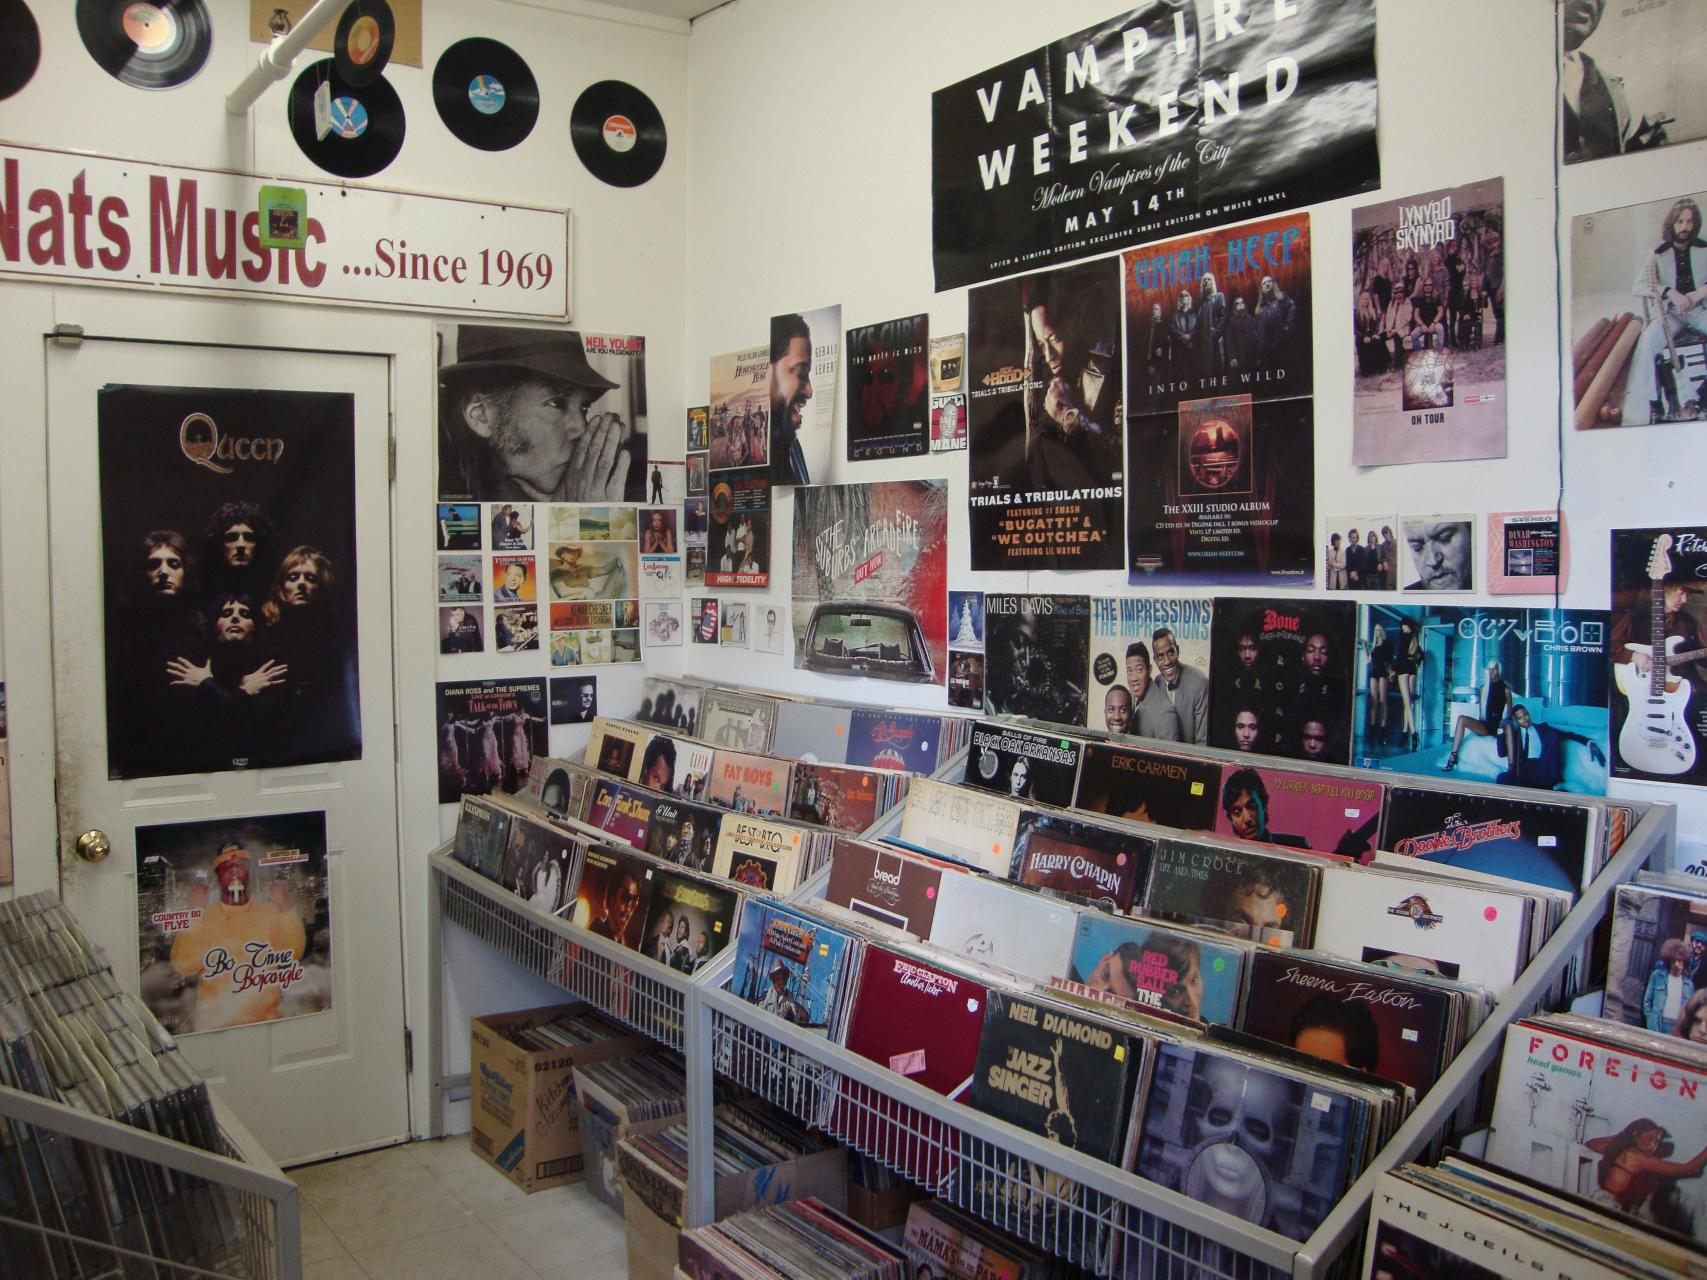 An interior shot of Nit Nats, with records, posters, and a sign from their original location on display